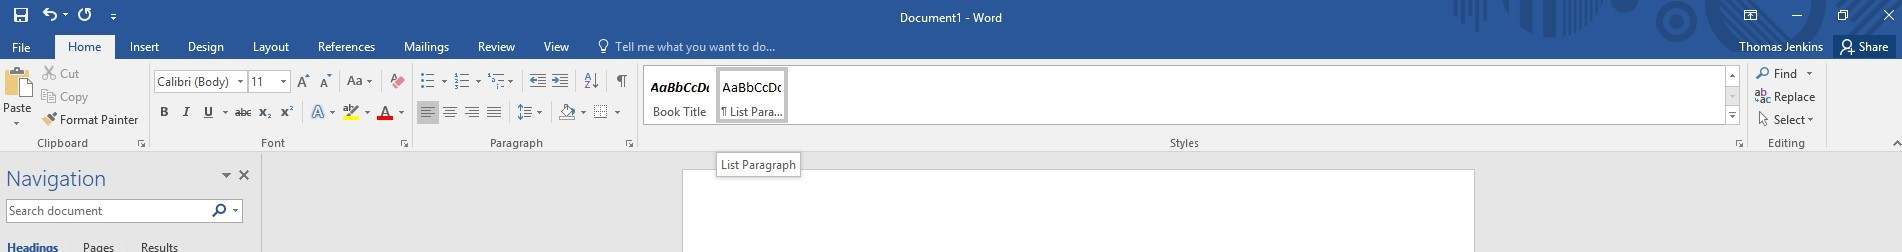 Screenshot showing where lists can be set up from in Word